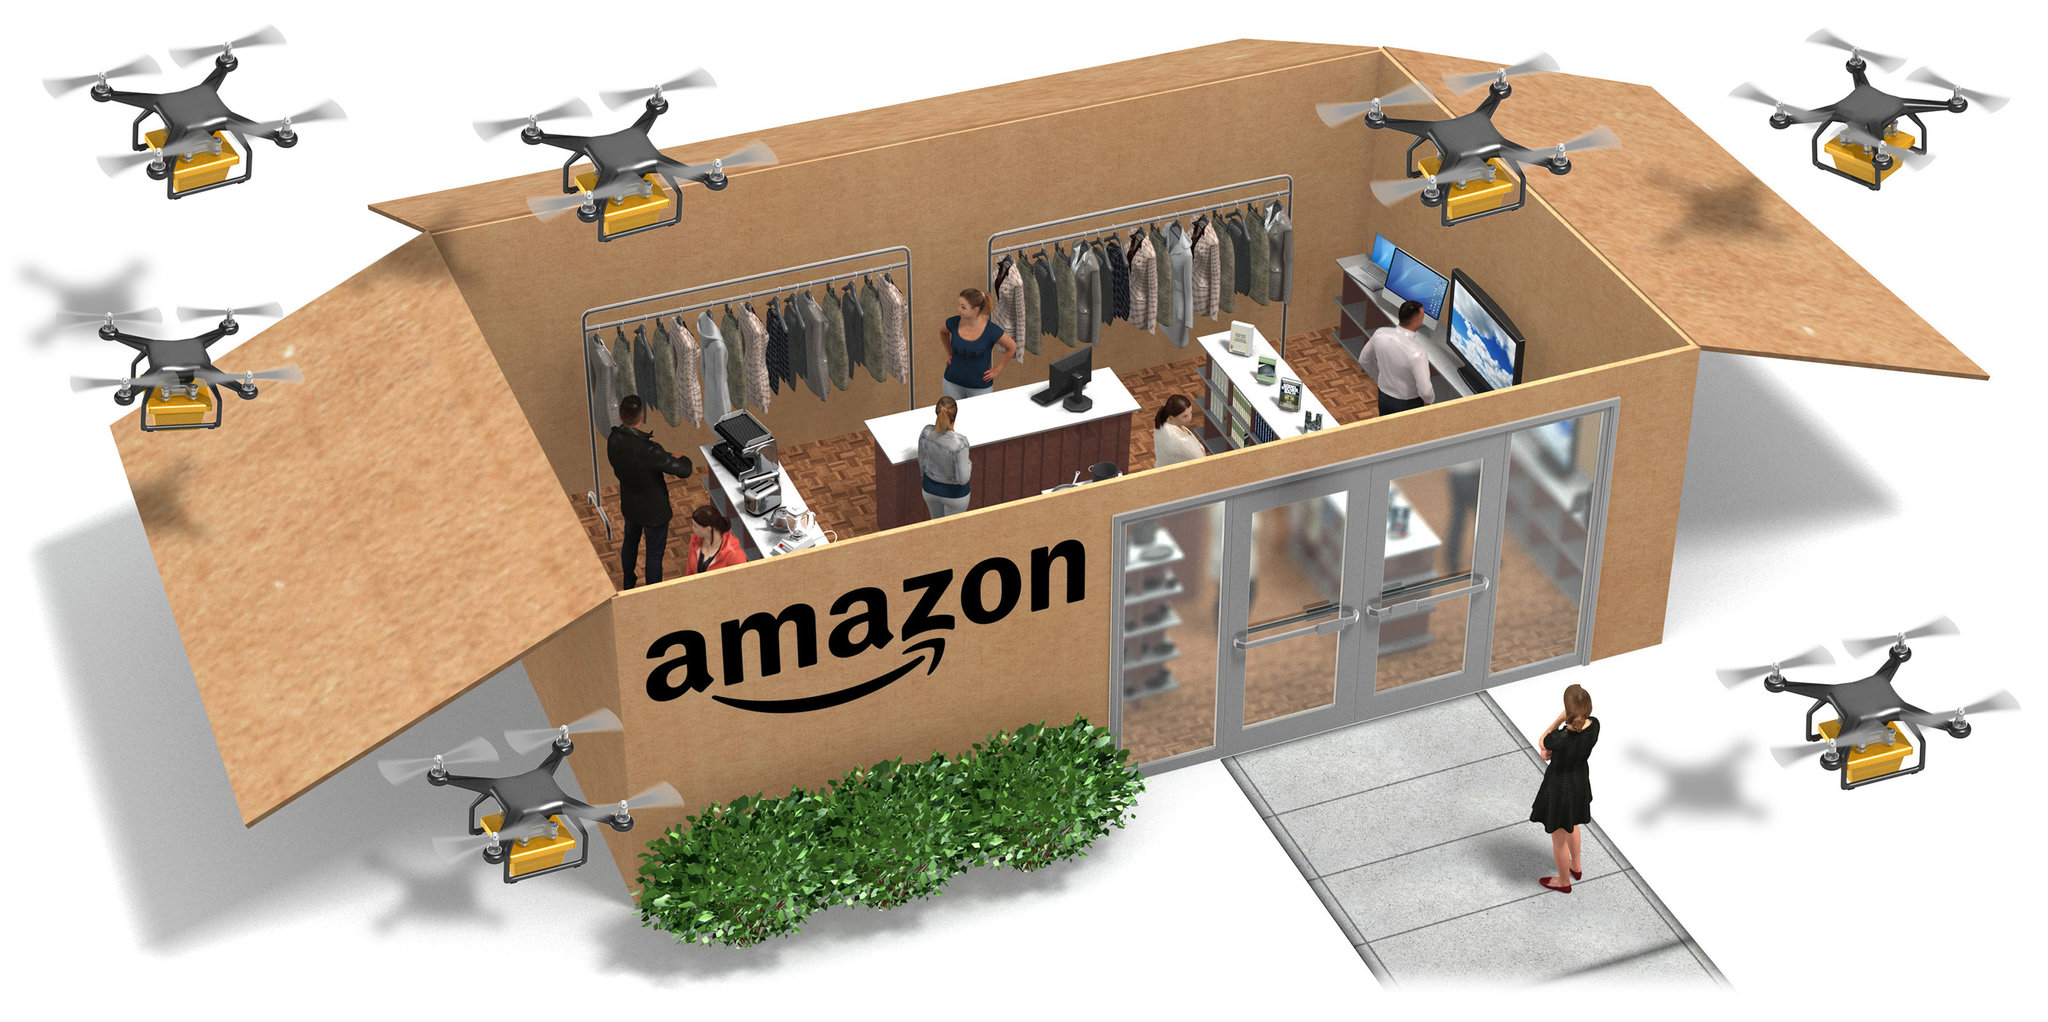 planning to open augmented reality stores – virtual reality